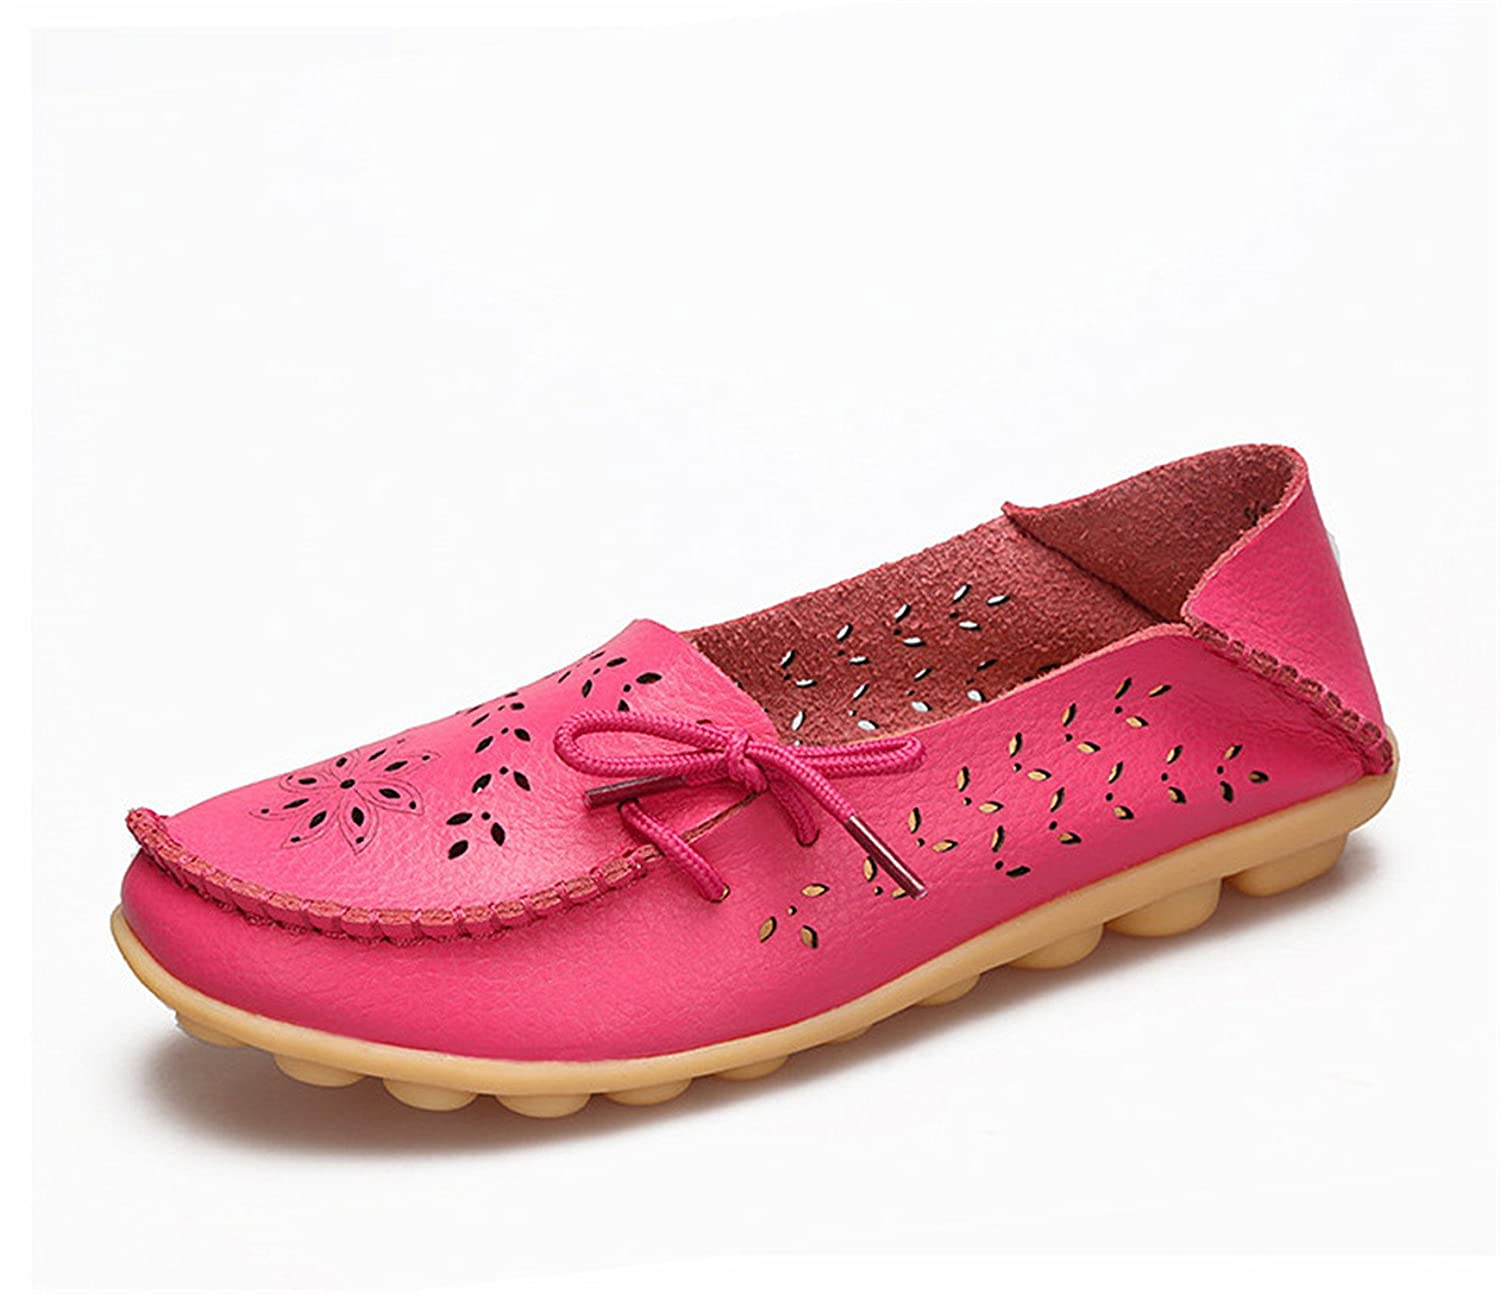 b185cfa48dd Surprising Day Women s Casual Shoes Genuine Leather Woman Loafers Slip-On Female  Flats Moccasins Ladies Driving Shoe Cut-Outs Mother Footwear RoseRed 3.5